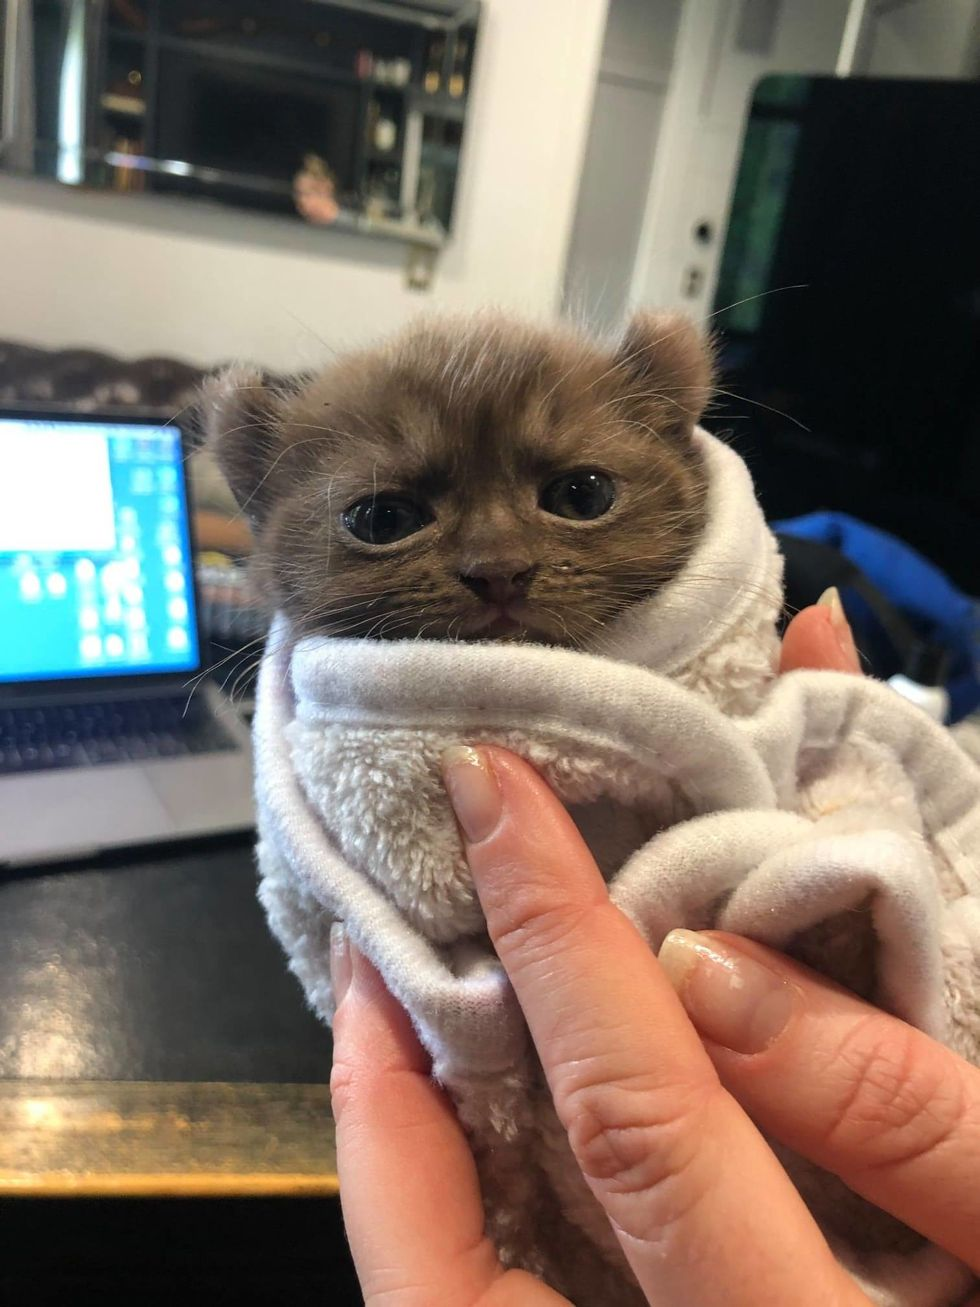 cute, kitten, quill, bear-eared, purrito